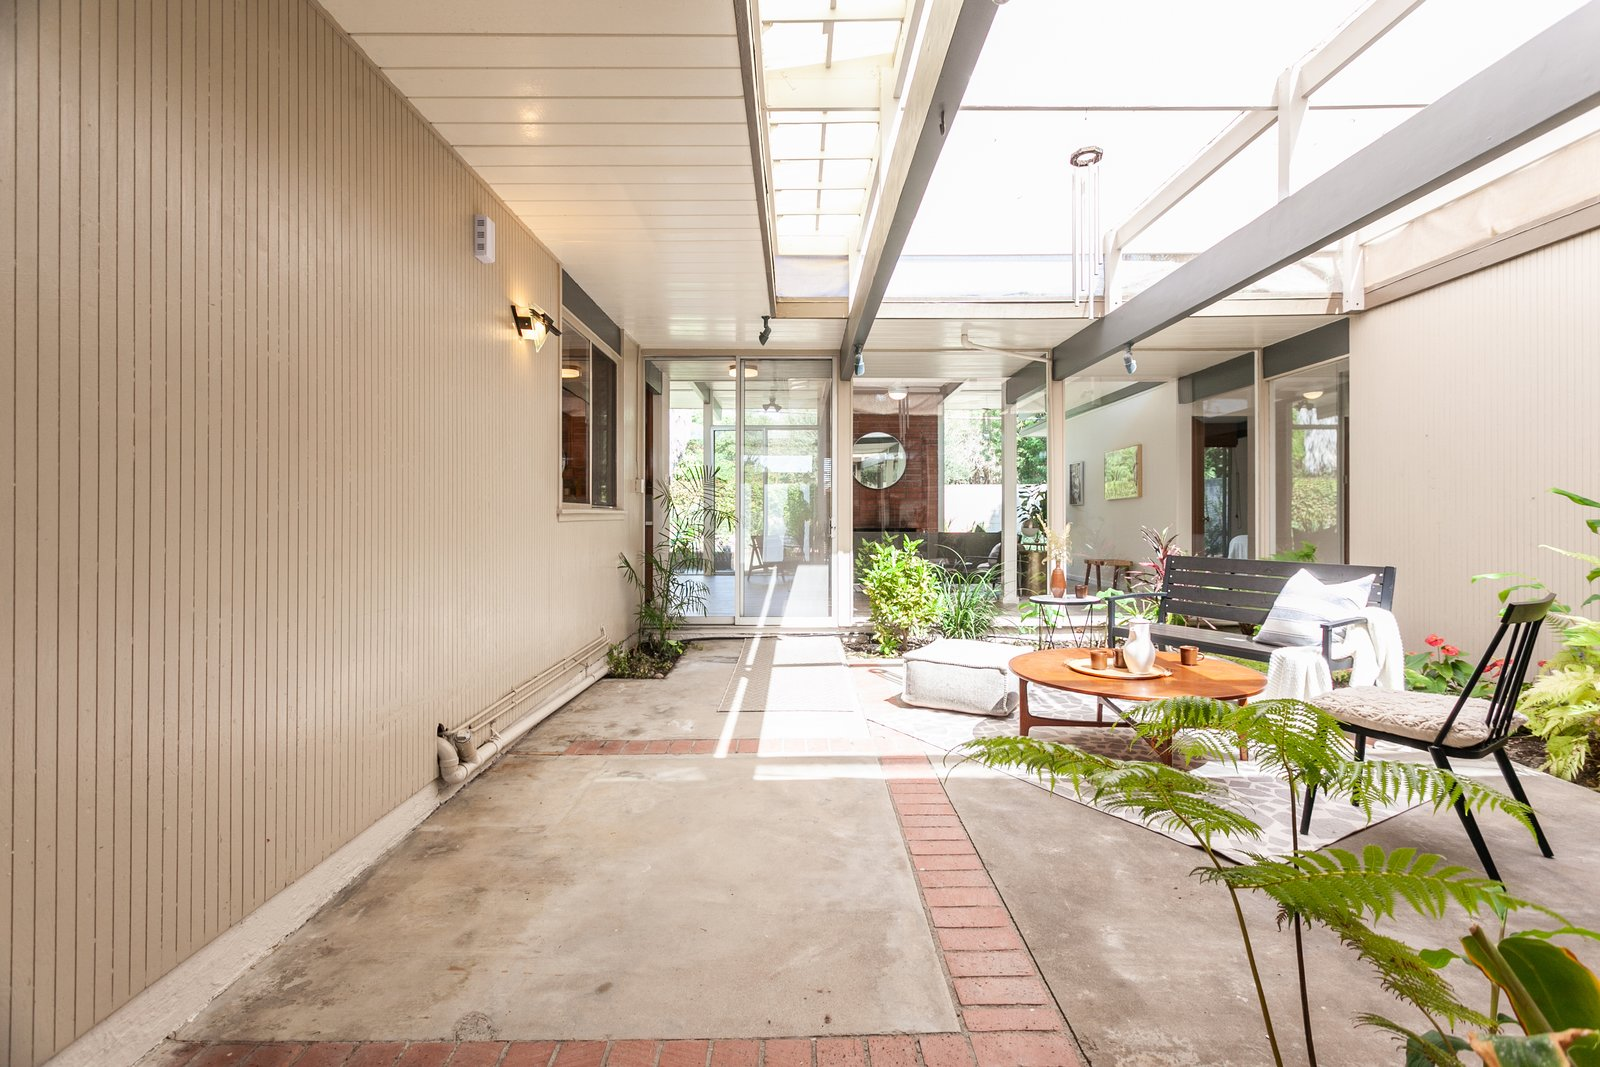 Outdoor, Small Patio, Porch, Deck, Gardens, and Concrete Patio, Porch, Deck The entrance leads to a spacious central atrium—a popular feature of many Eichler homes.     Photo 2 of 15 in An Updated Orange County Eichler Hits the Market at $1M